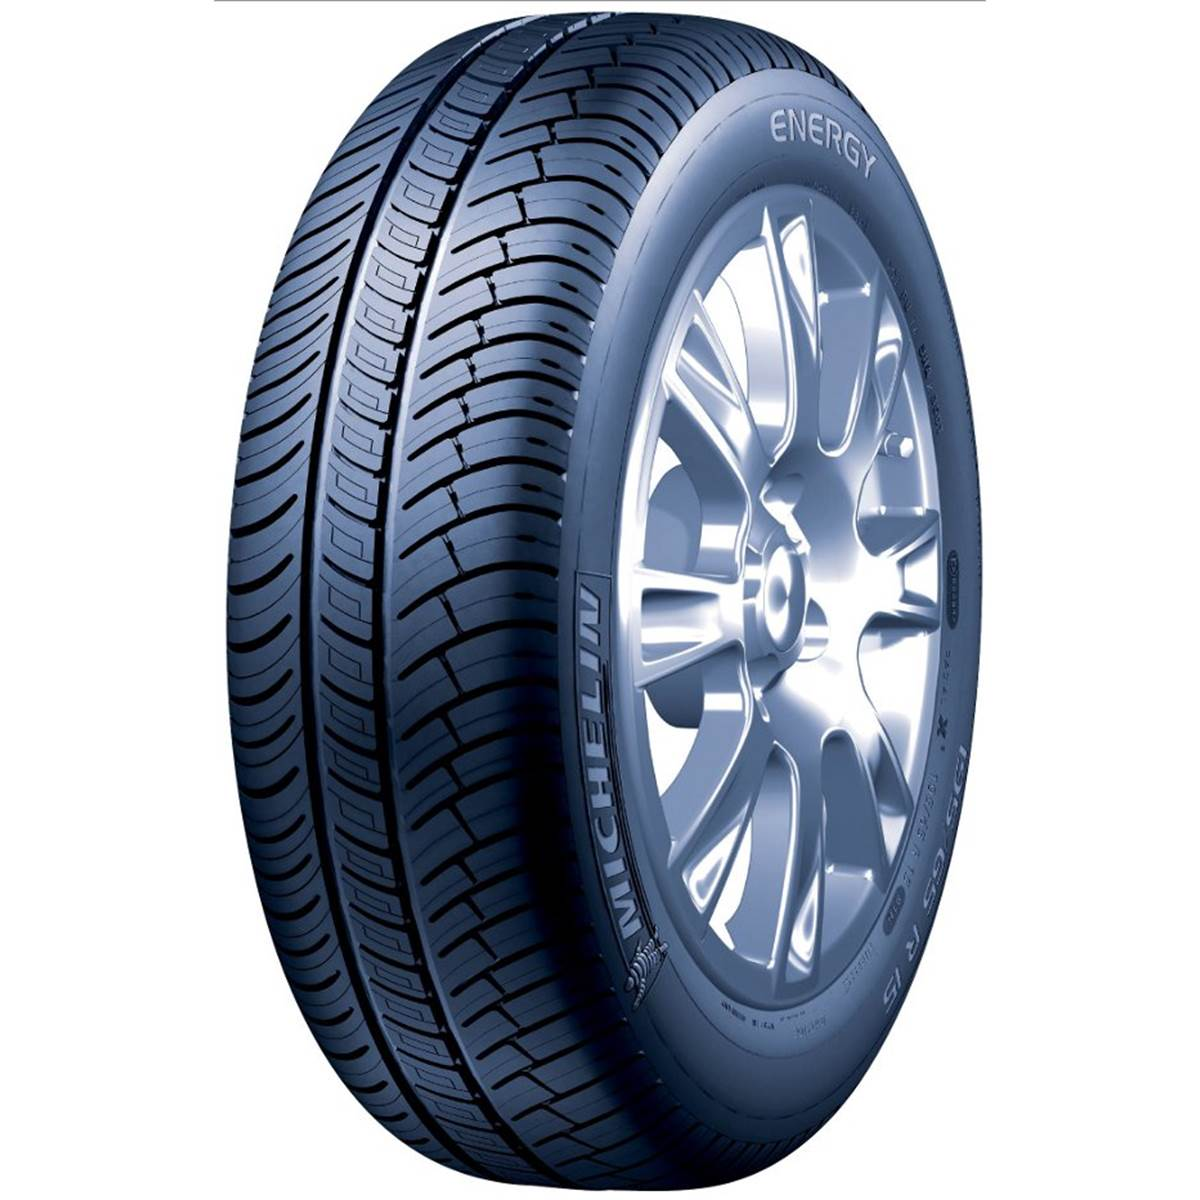 Pneu Michelin 155/65R14 75T Energy E3B